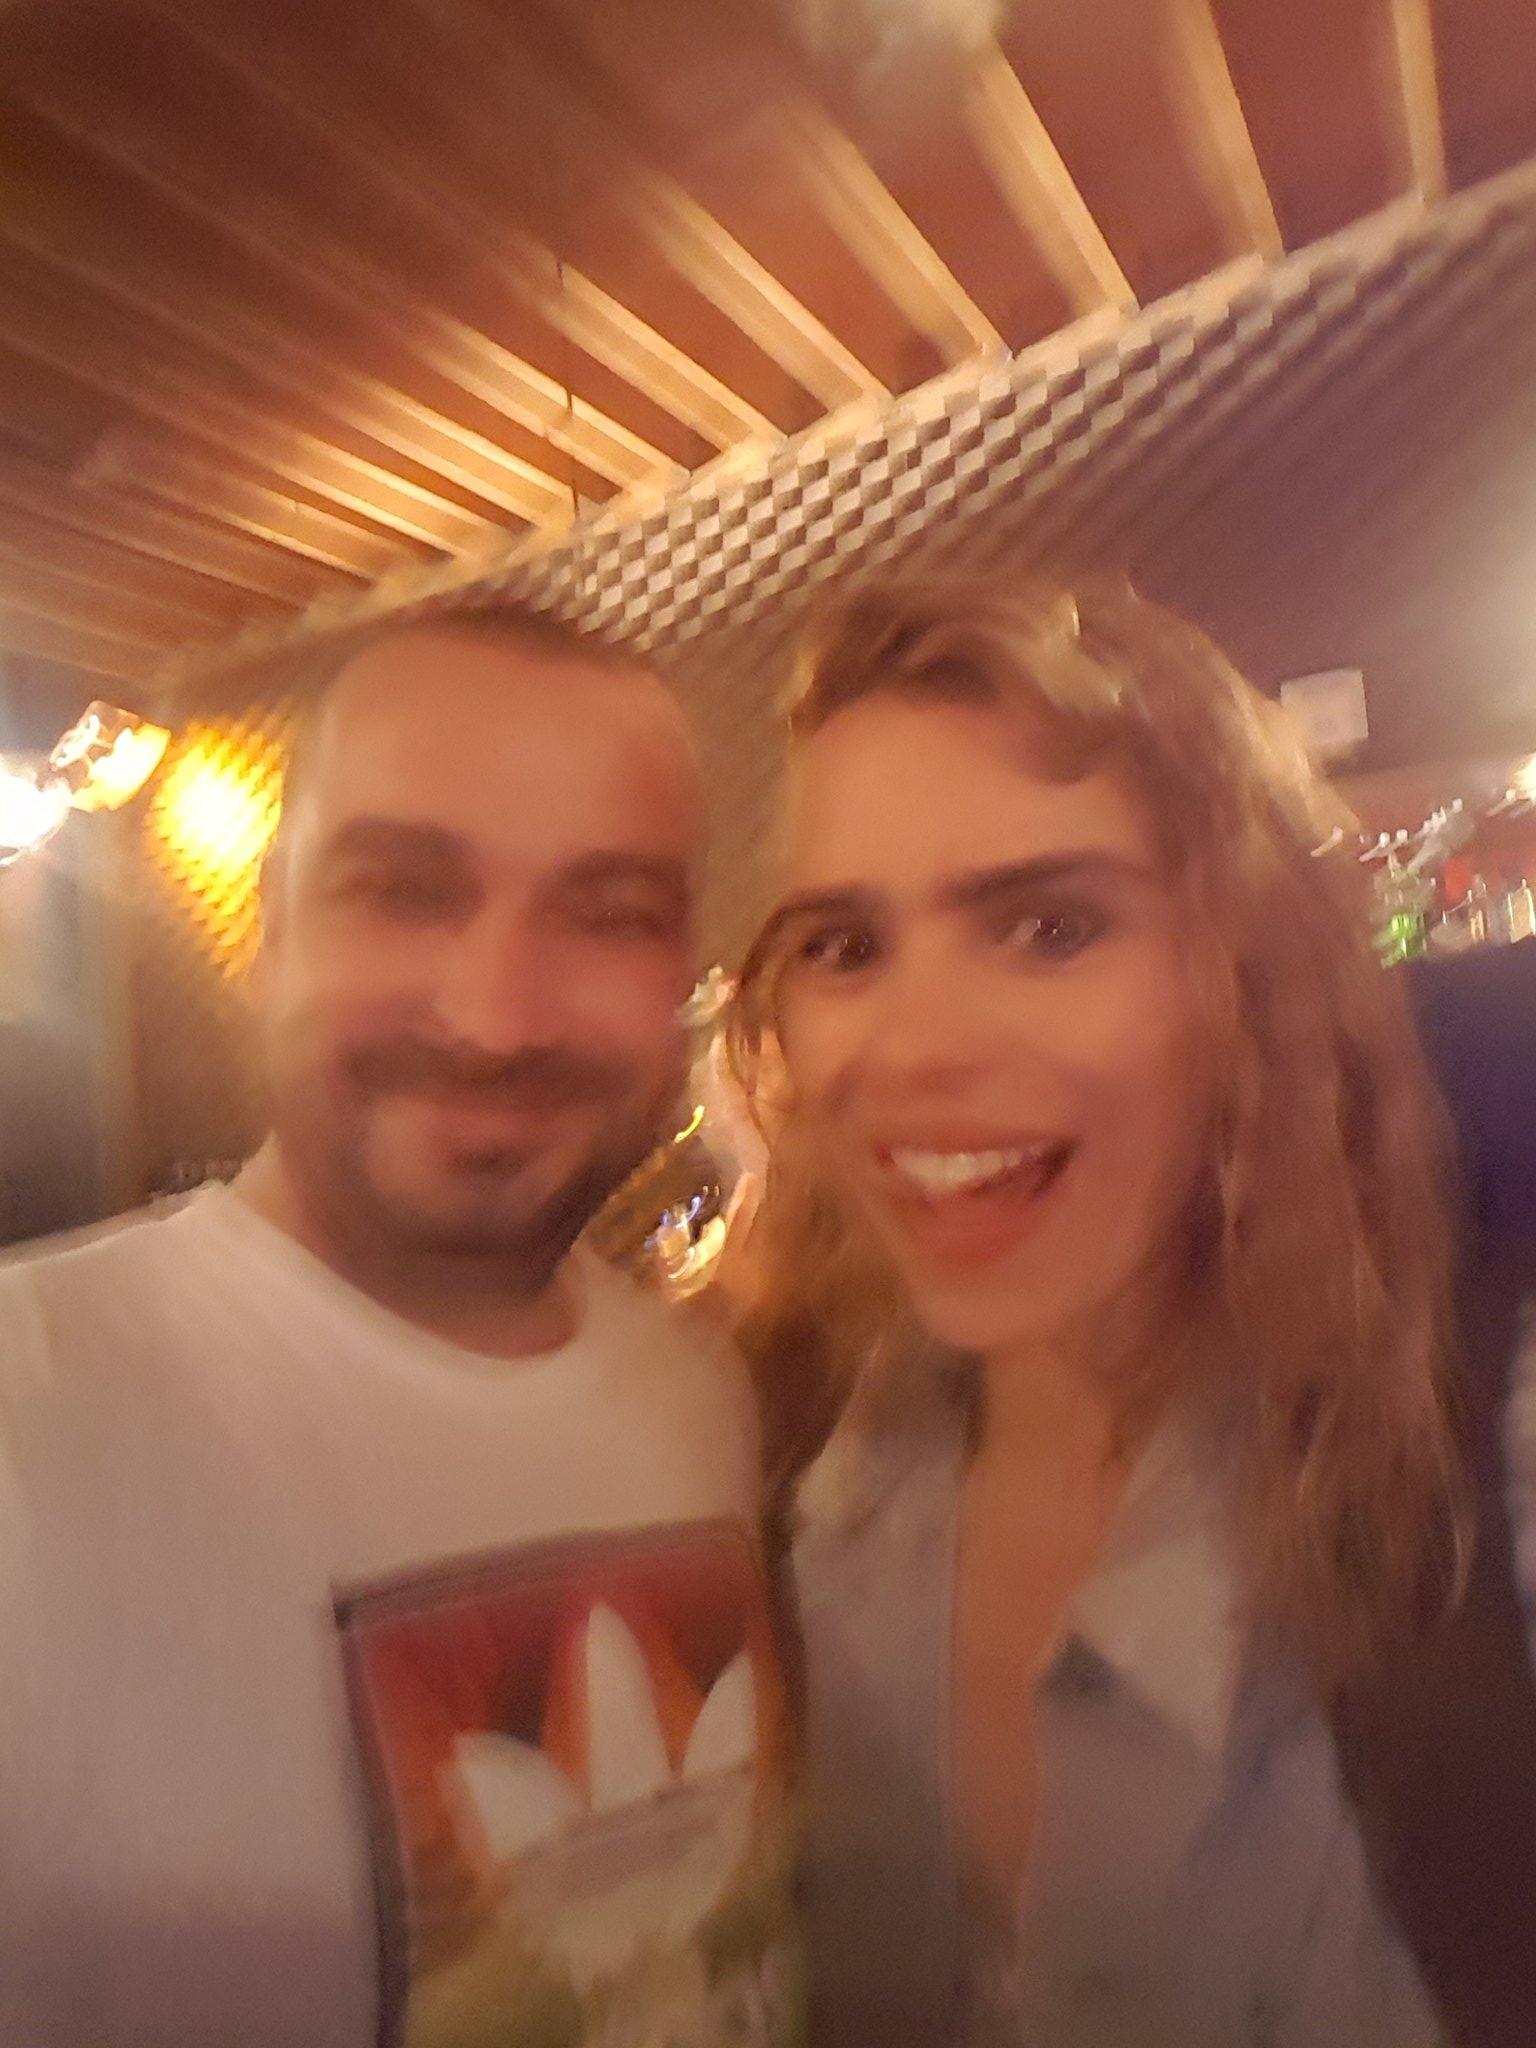 @billiepiper thank you for the blurry photo! You're an incredible actress. That was one of the best nights of my life #Yerma #ShakeyHands https://t.co/zkgM1Drhmp